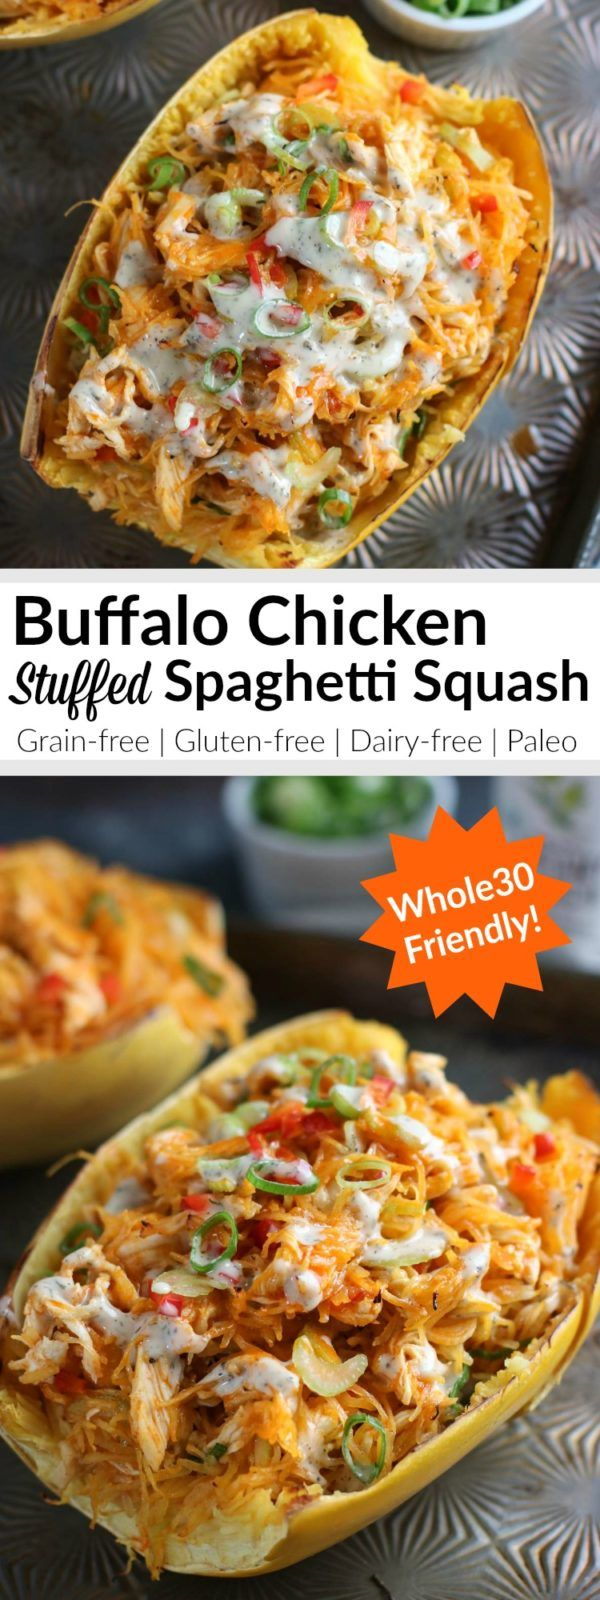 Buffalo Chicken Stuffed Spaghetti Squash | 308 calories per serving